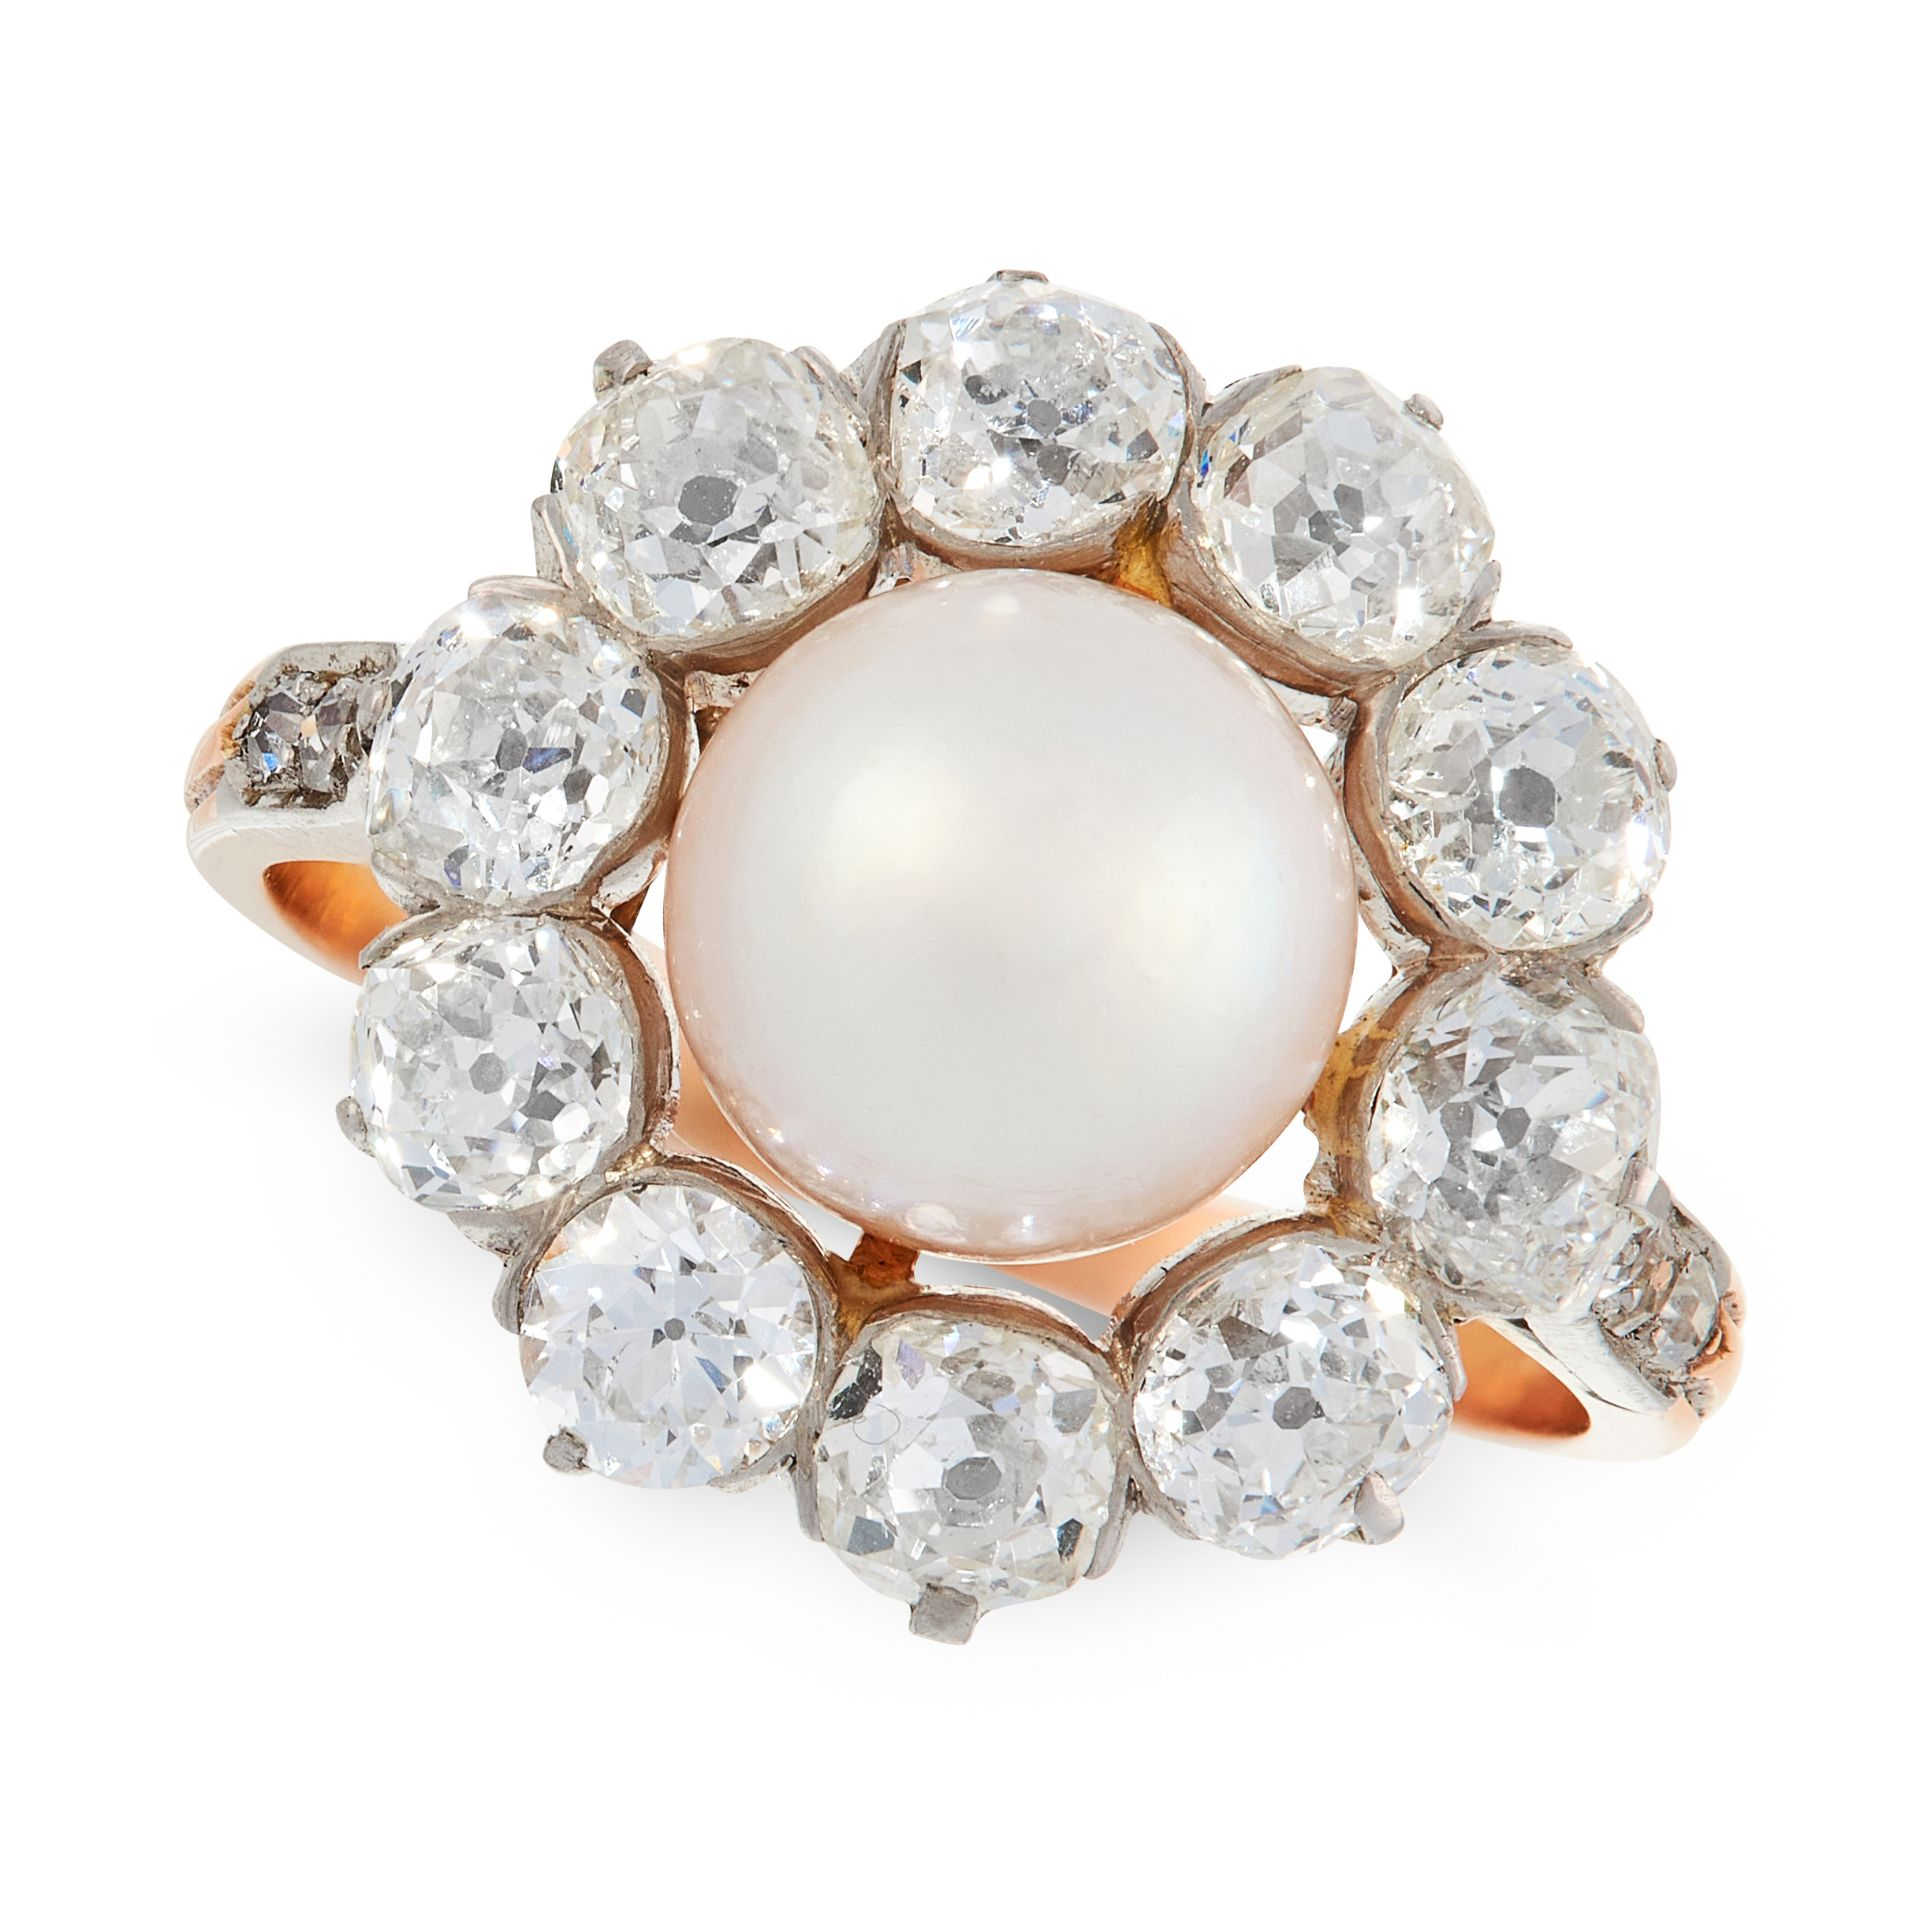 A NATURAL PEARL AND DIAMOND DRESS RING, EARLY 20TH CENTURY in 18ct yellow gold and platinum, set